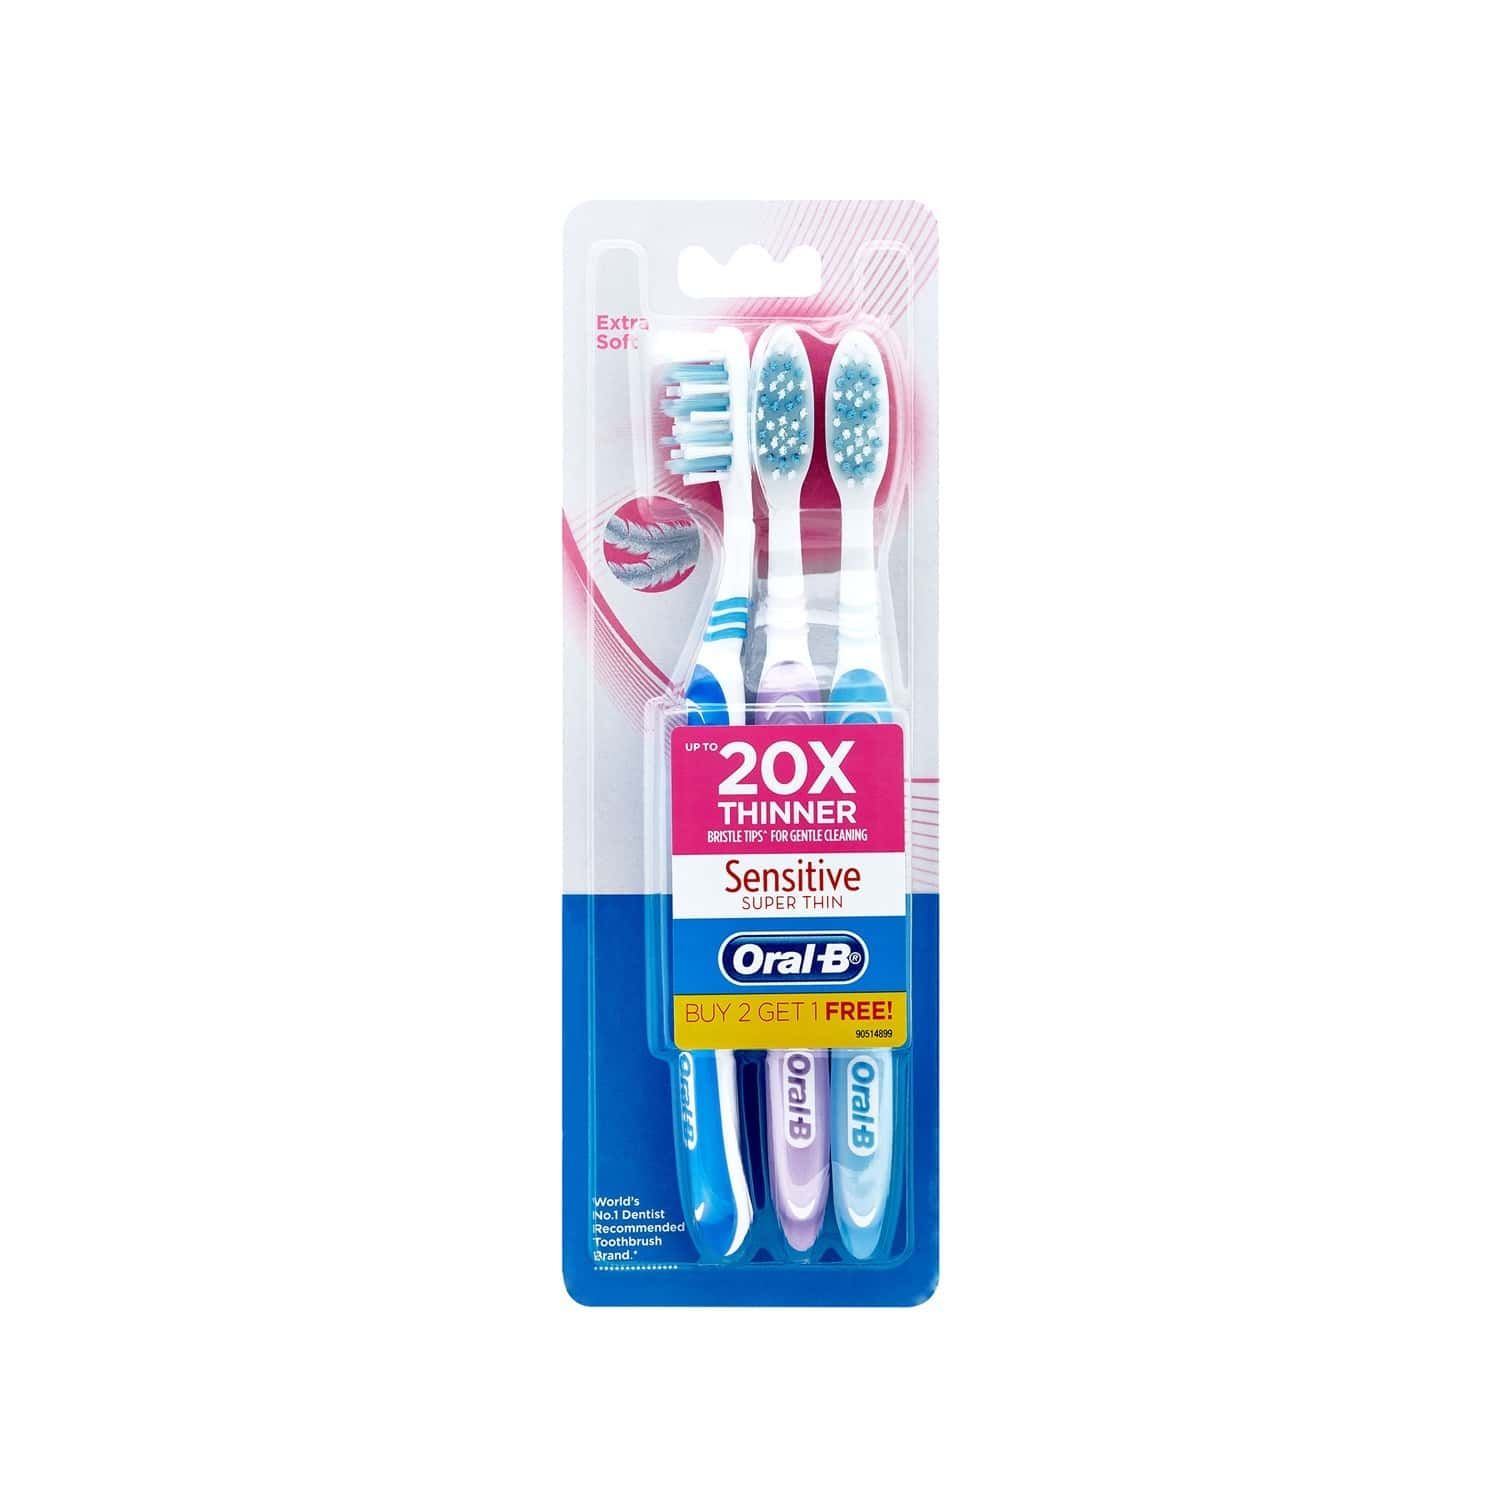 Oral-b Sensitive Super Thin Toothbrush Soft Buy 2 Get 1 Pack